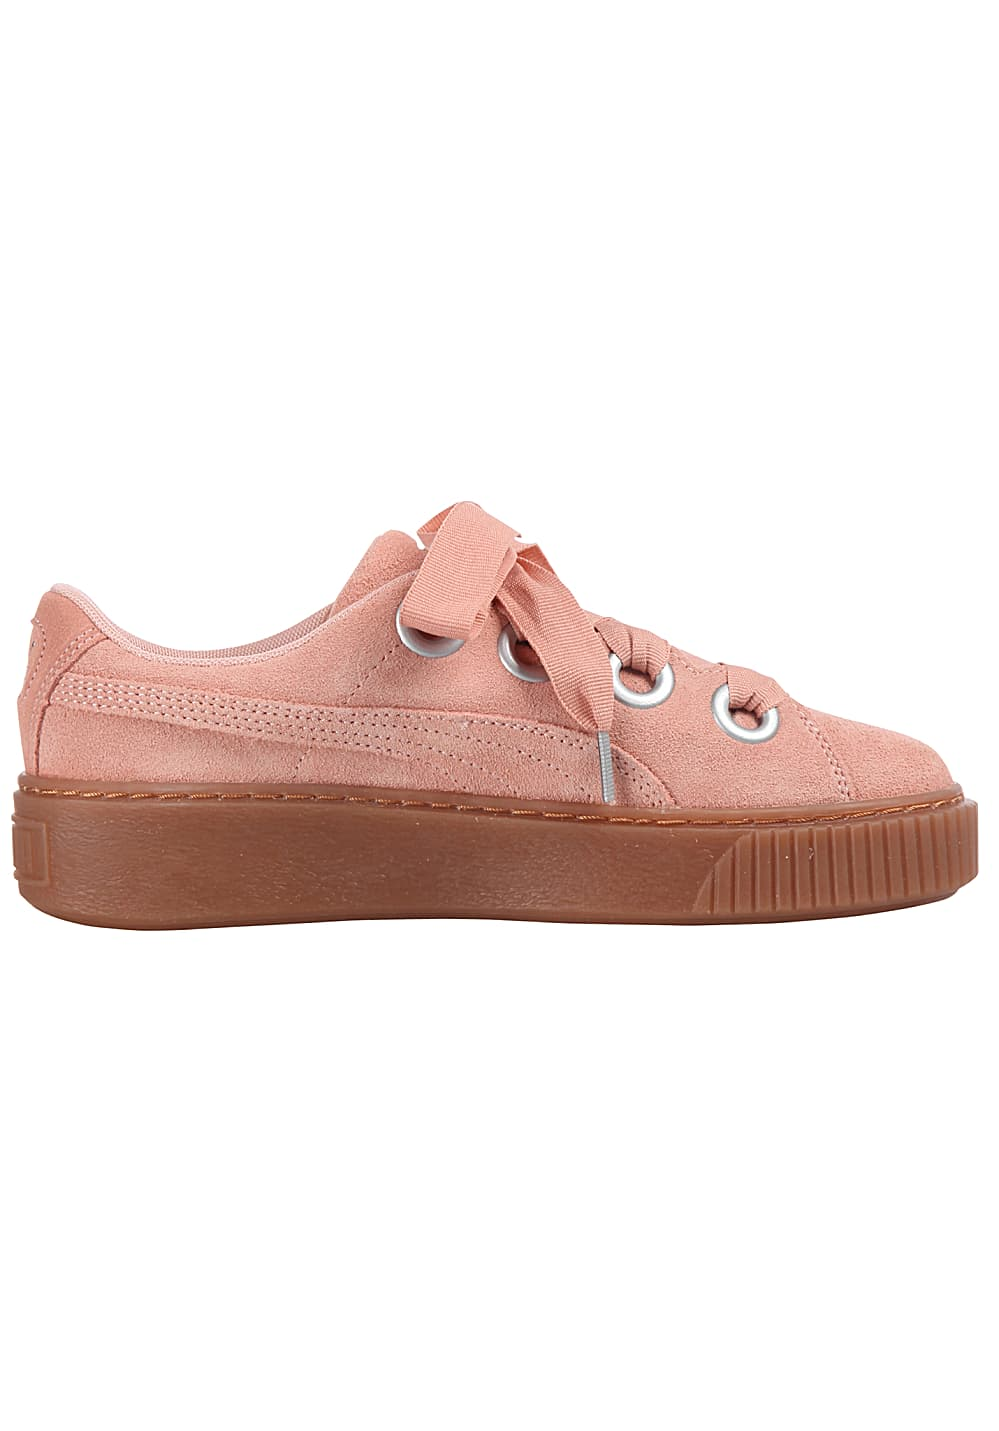 892f711d3dc Puma Platform Kiss Suede - Sneakers for Women - Pink - Planet Sports